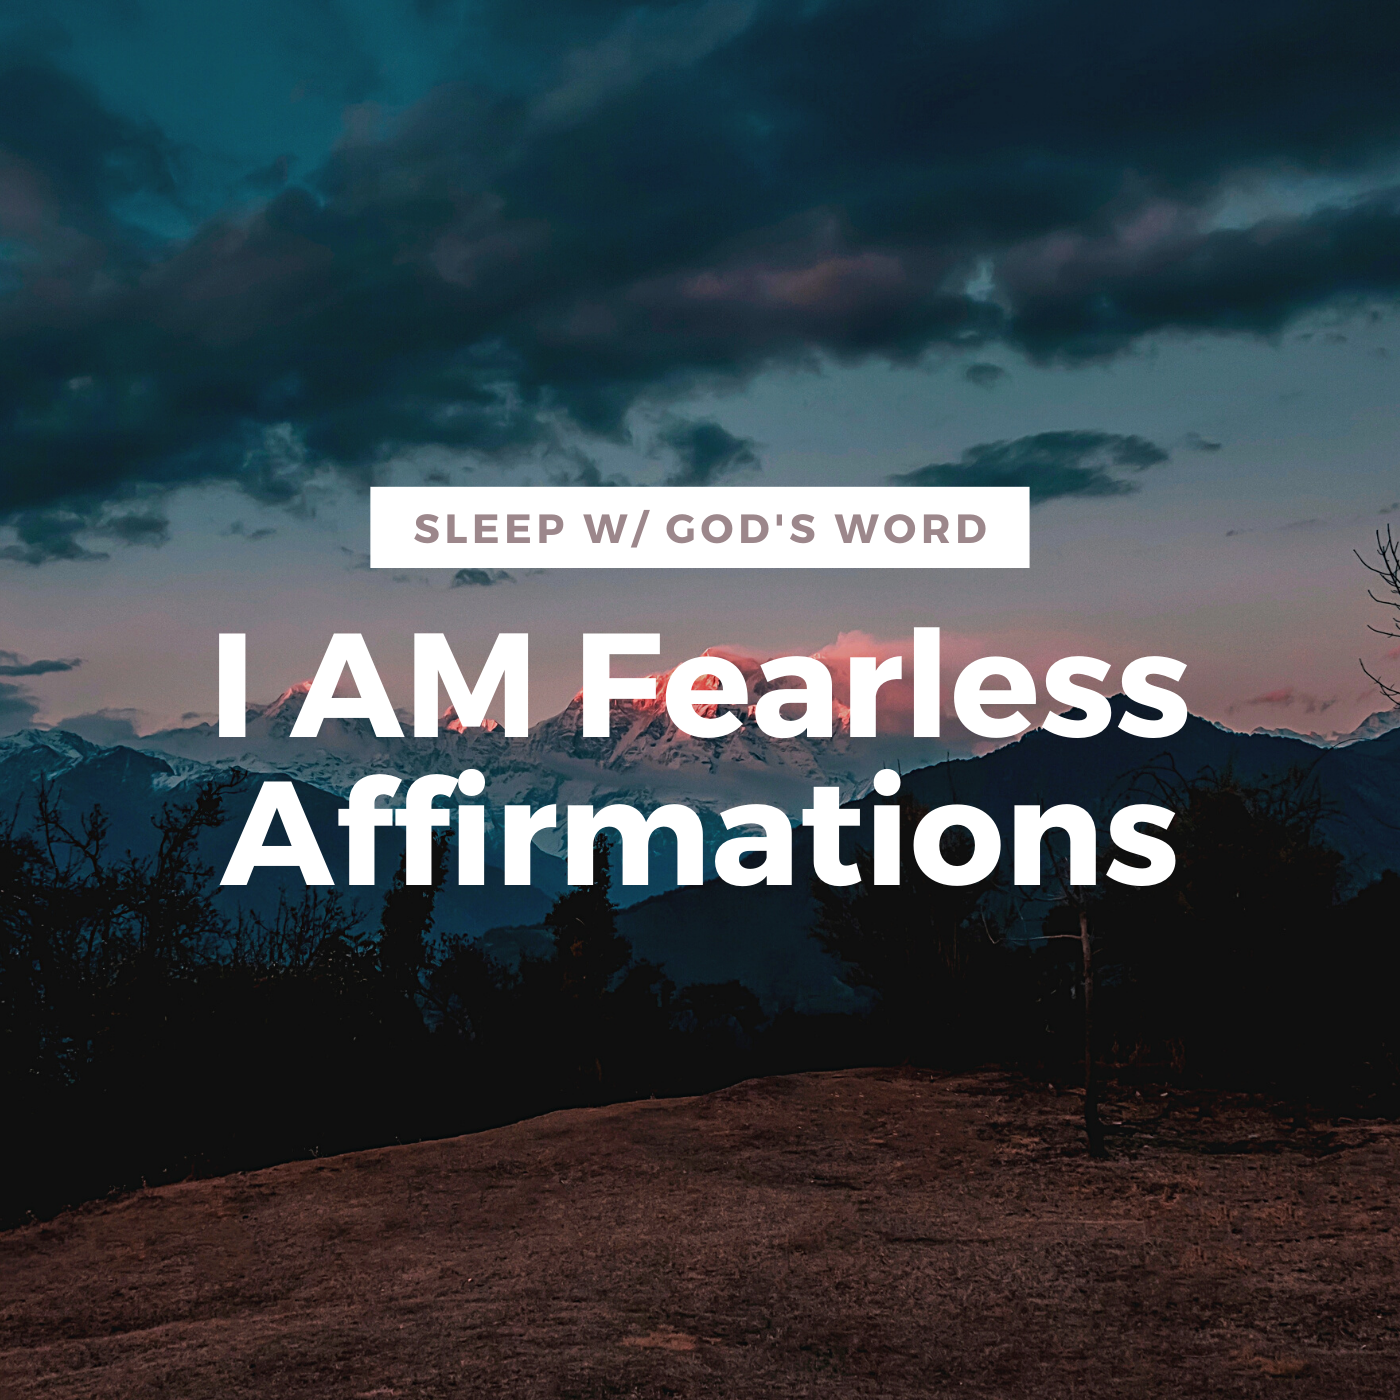 I AM FEARLESS Affirmations - Defeat Anxious Thoughts (While You Sleep)